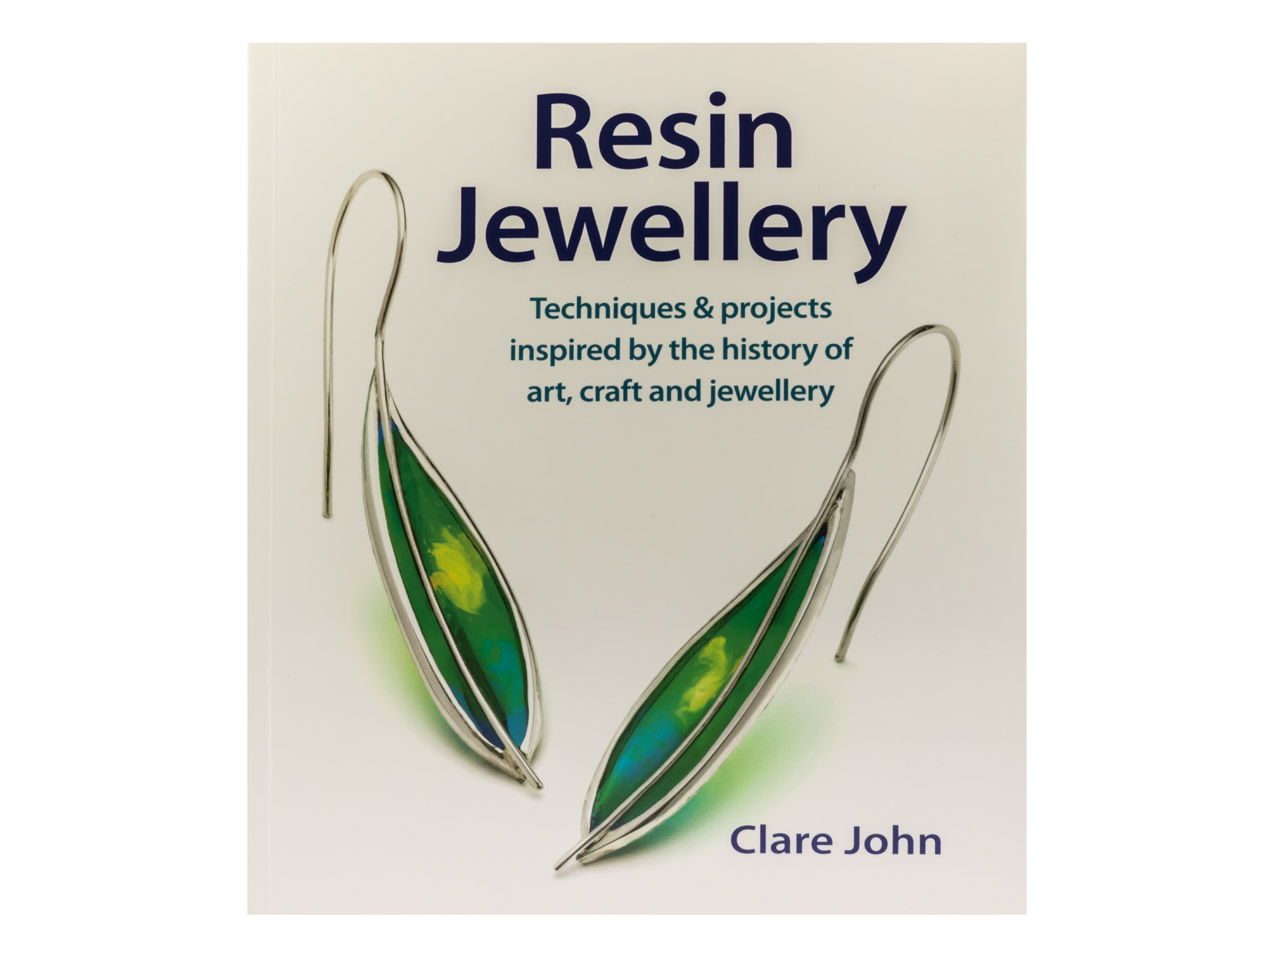 Resin Jewellery By Clare John